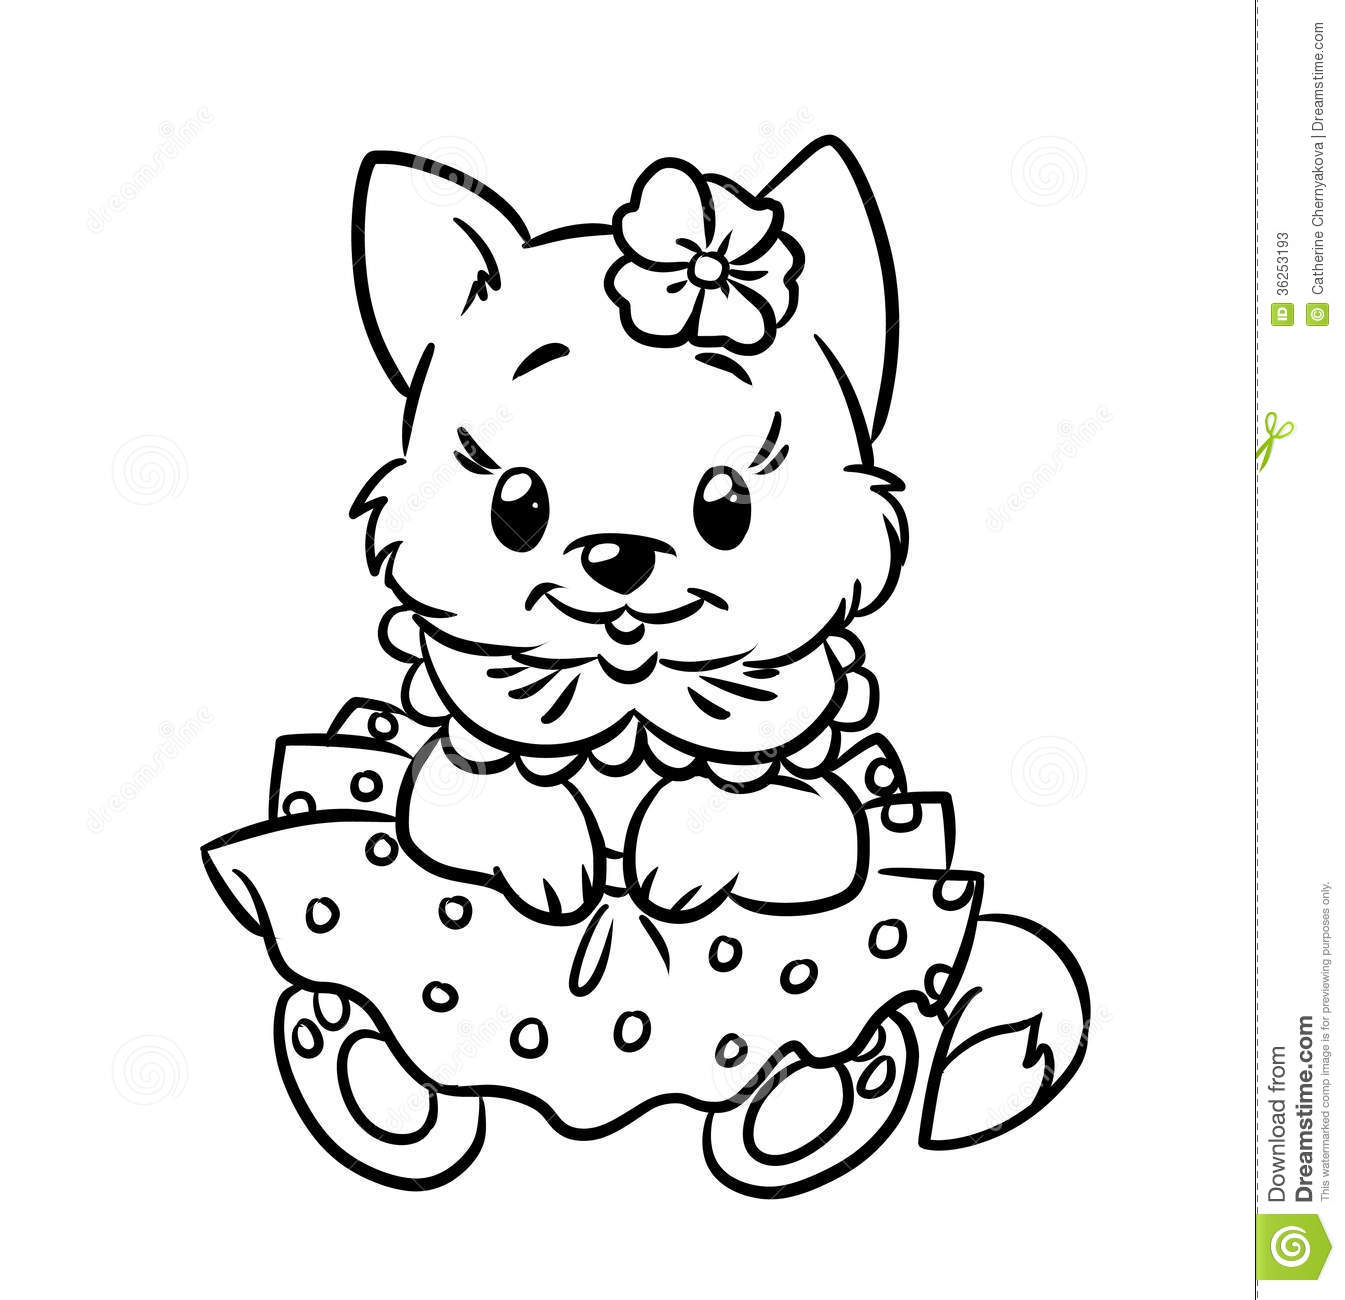 baby caterpillar coloring pages - photo#47